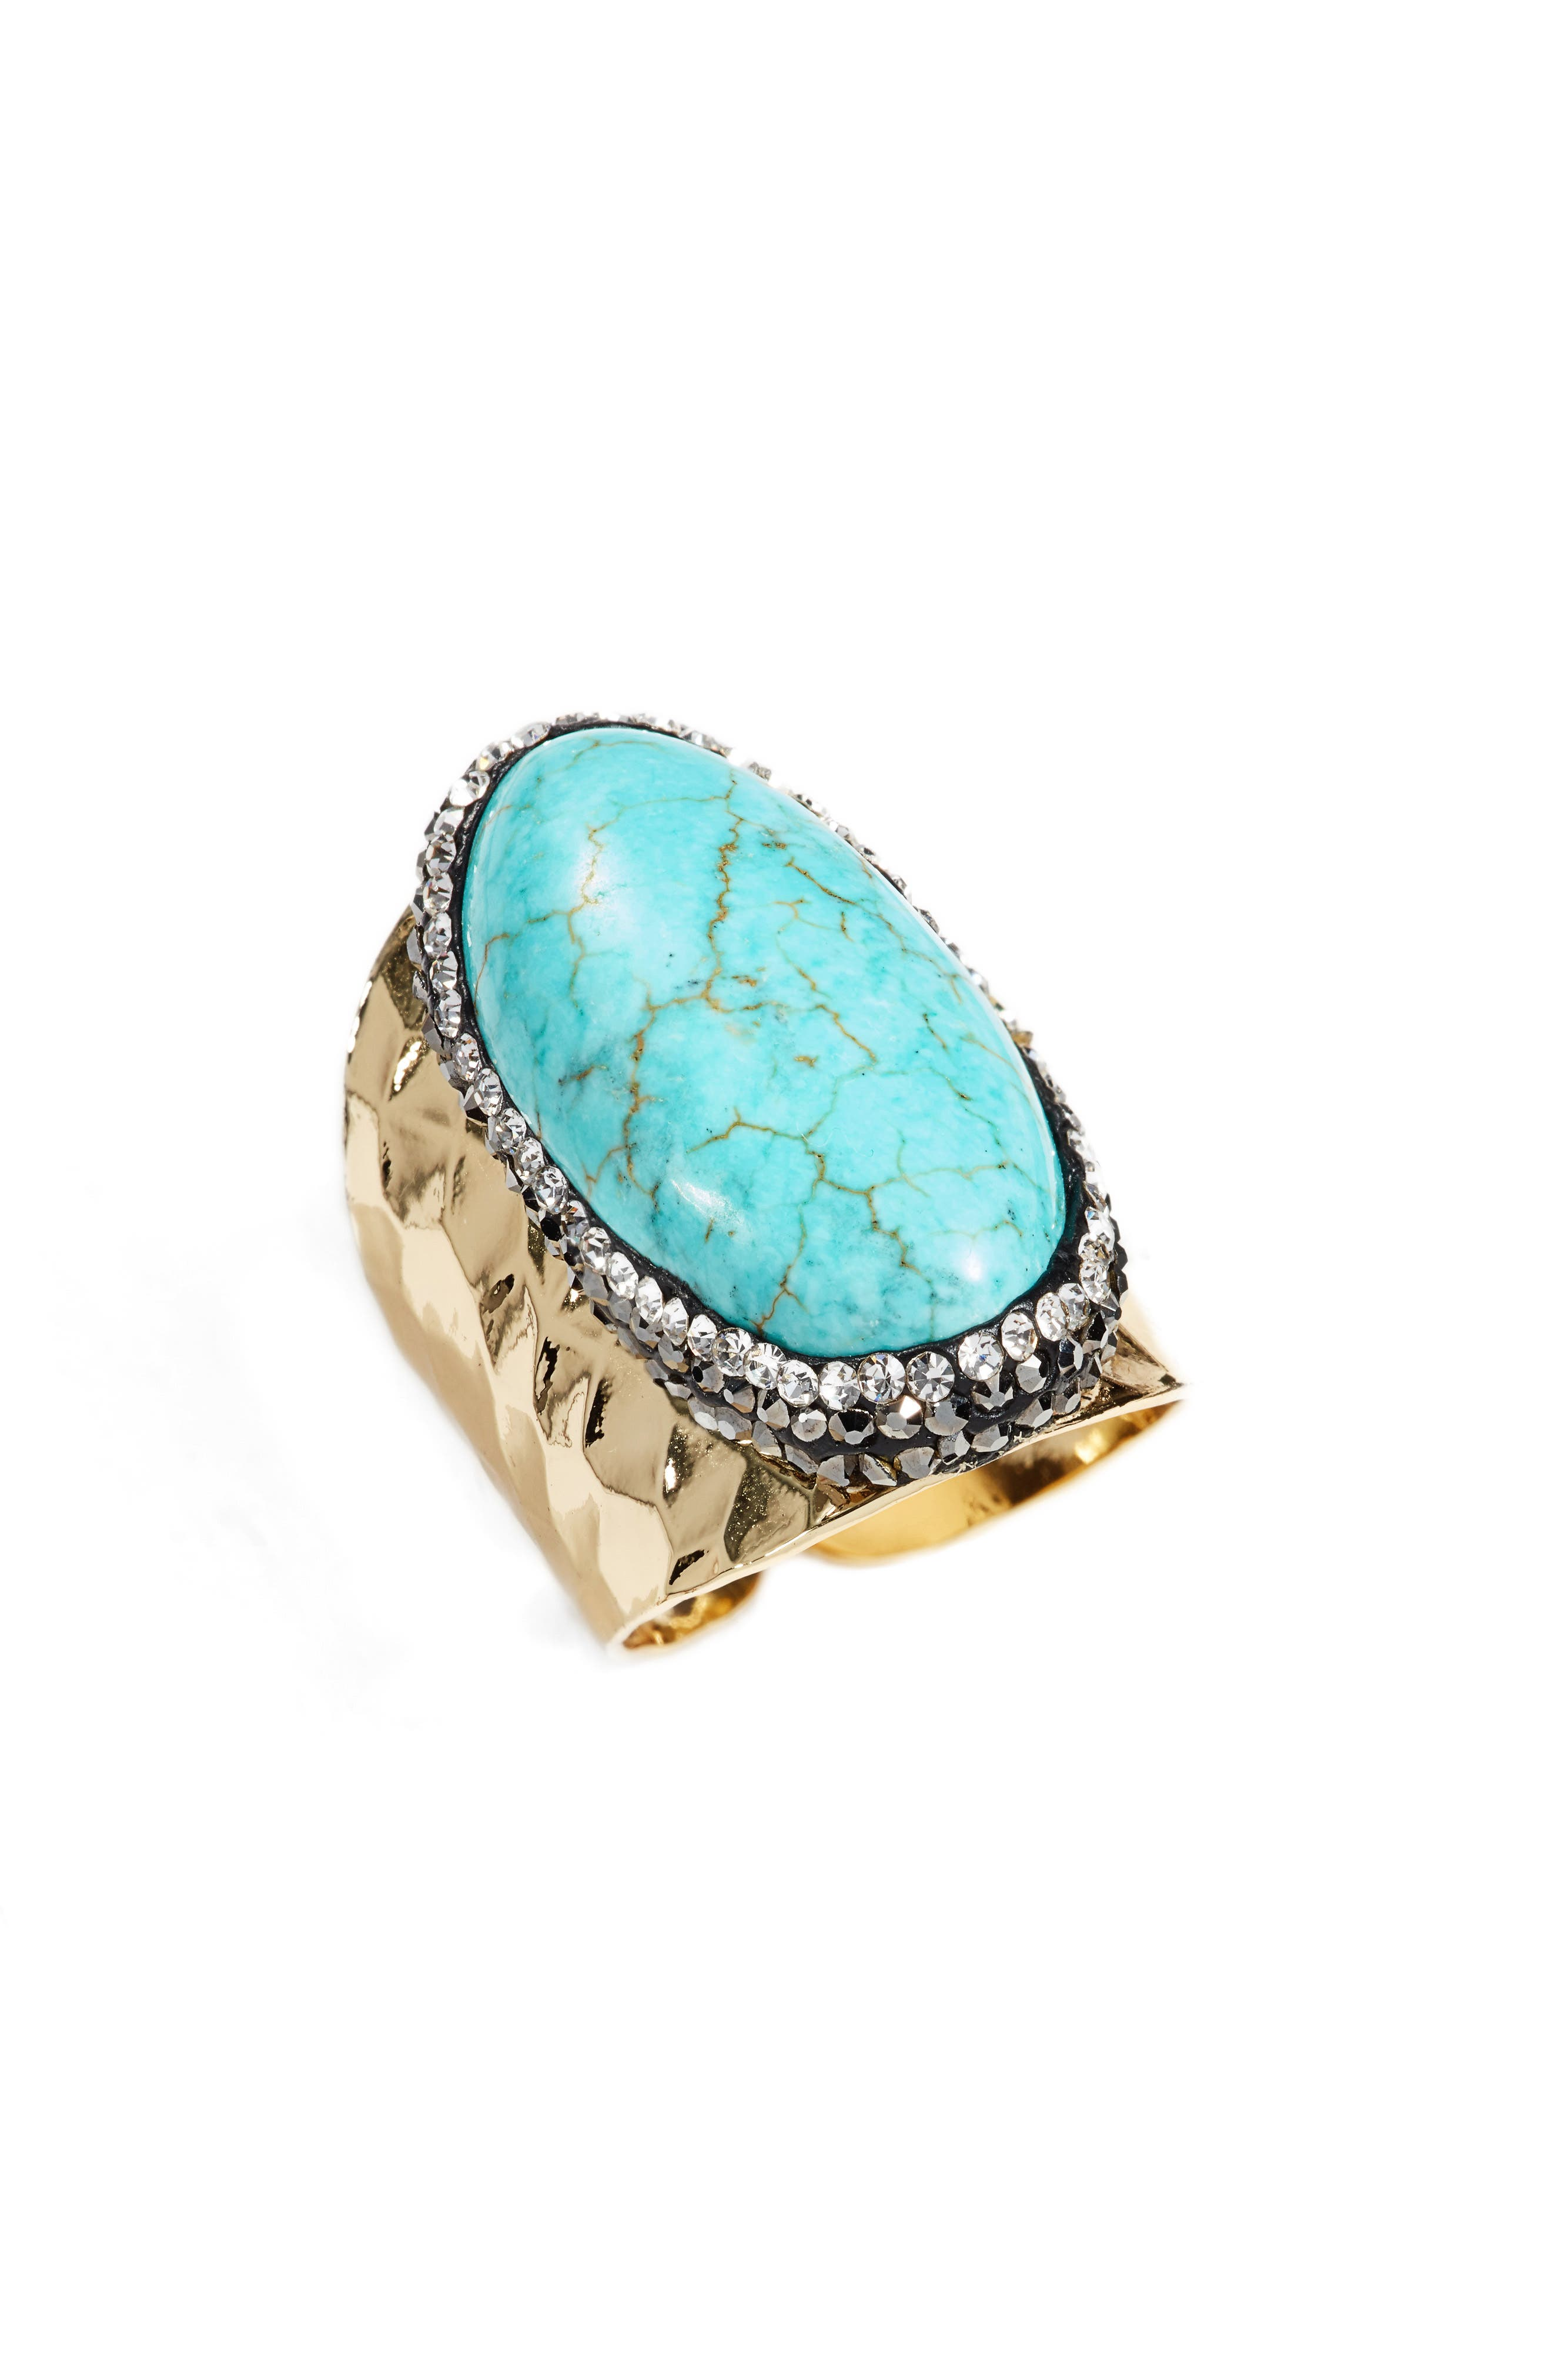 Queenie Turqoise Adjustable Ring,                             Main thumbnail 1, color,                             Opal/ Turquoise